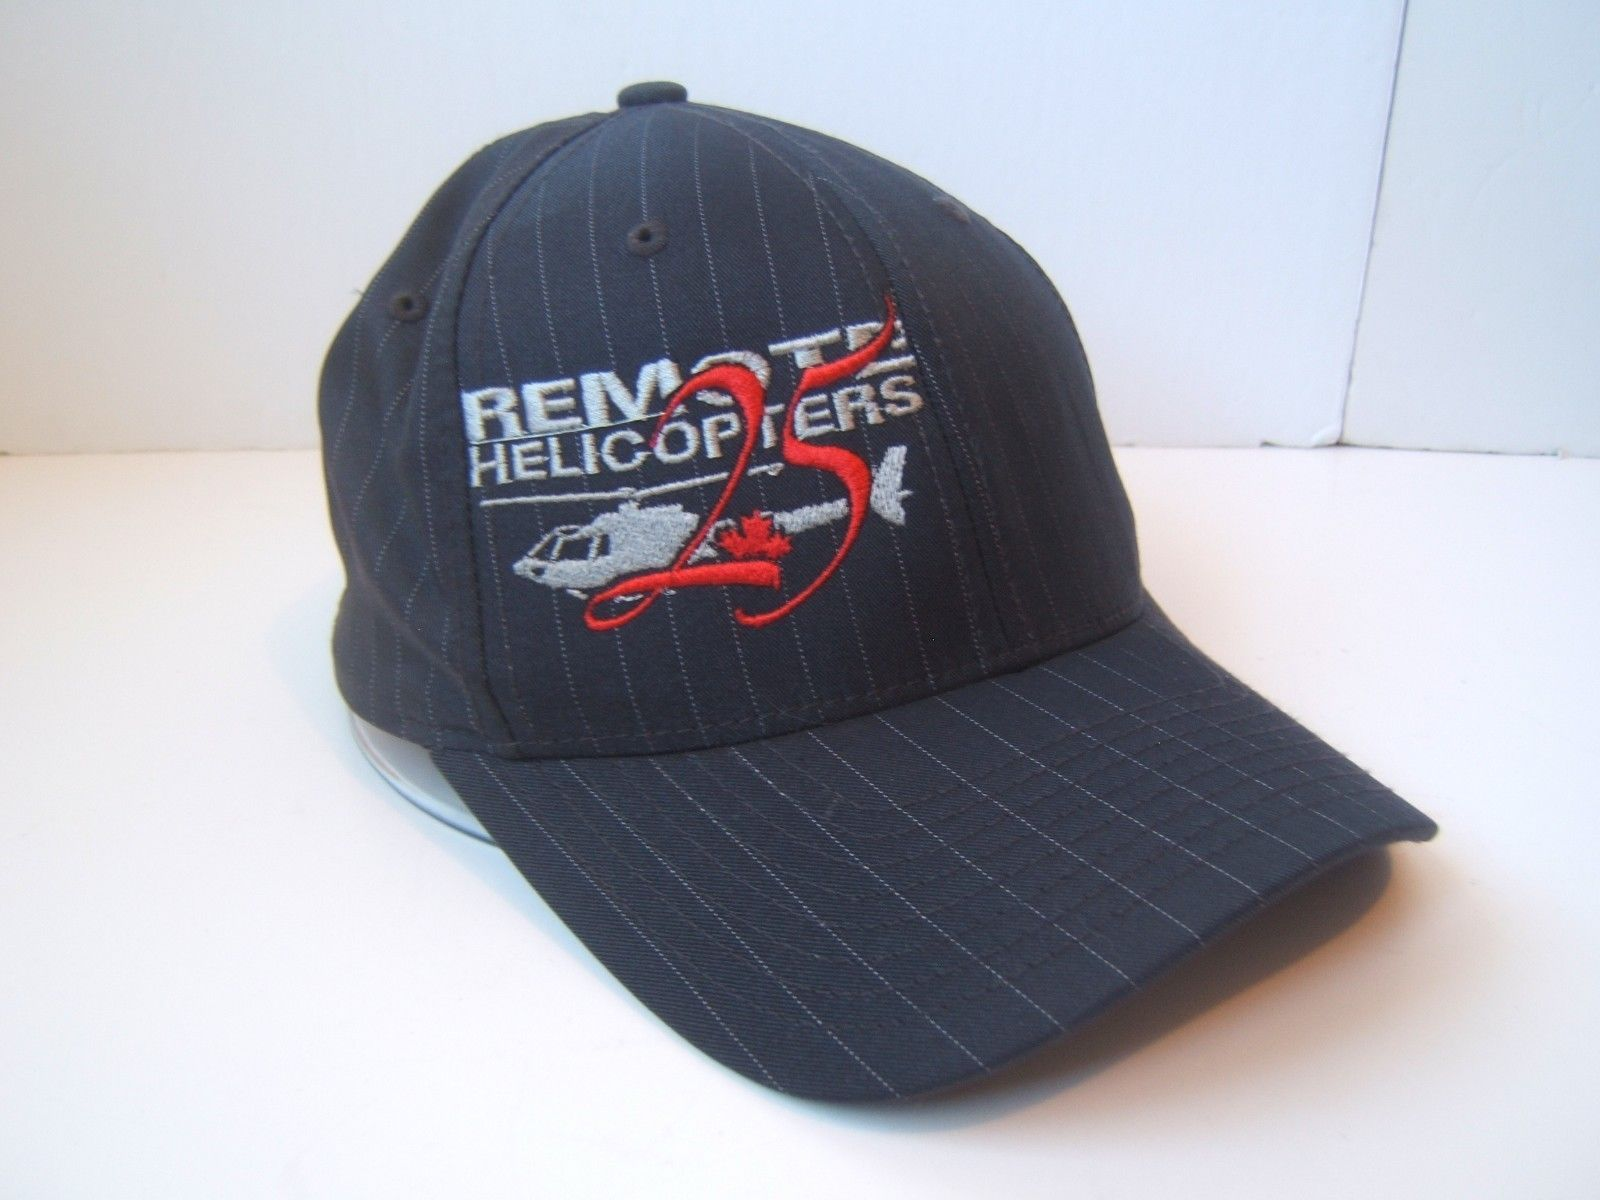 Remote Helicopters Hat S-M Stretch Fit Black Pinstripe Baseball Cap